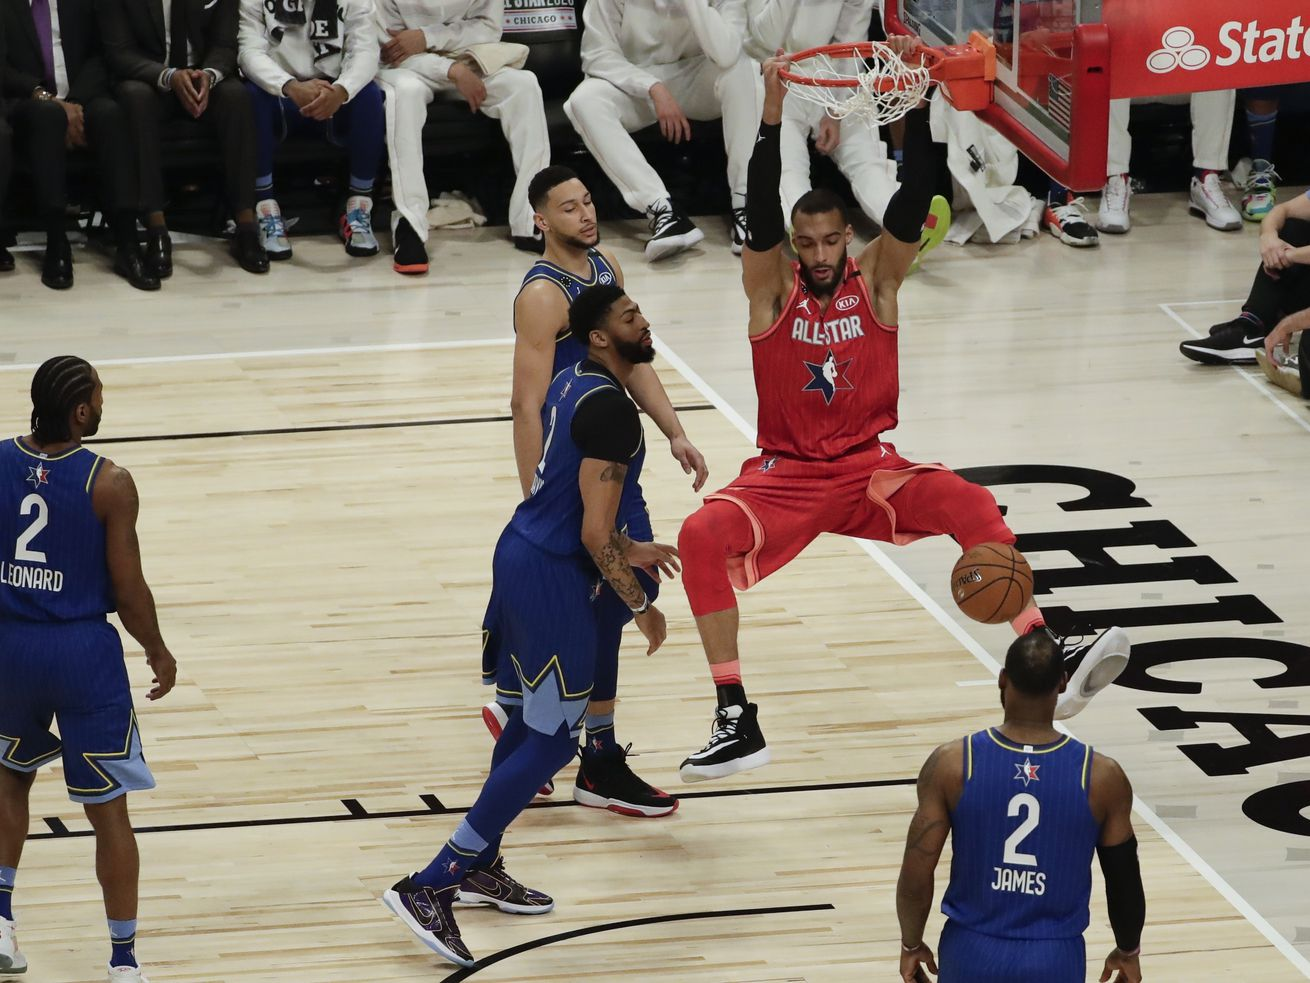 Rudy Gobert sends doubters running as he shines alongside Donovan Mitchell in NBA All-Star Game